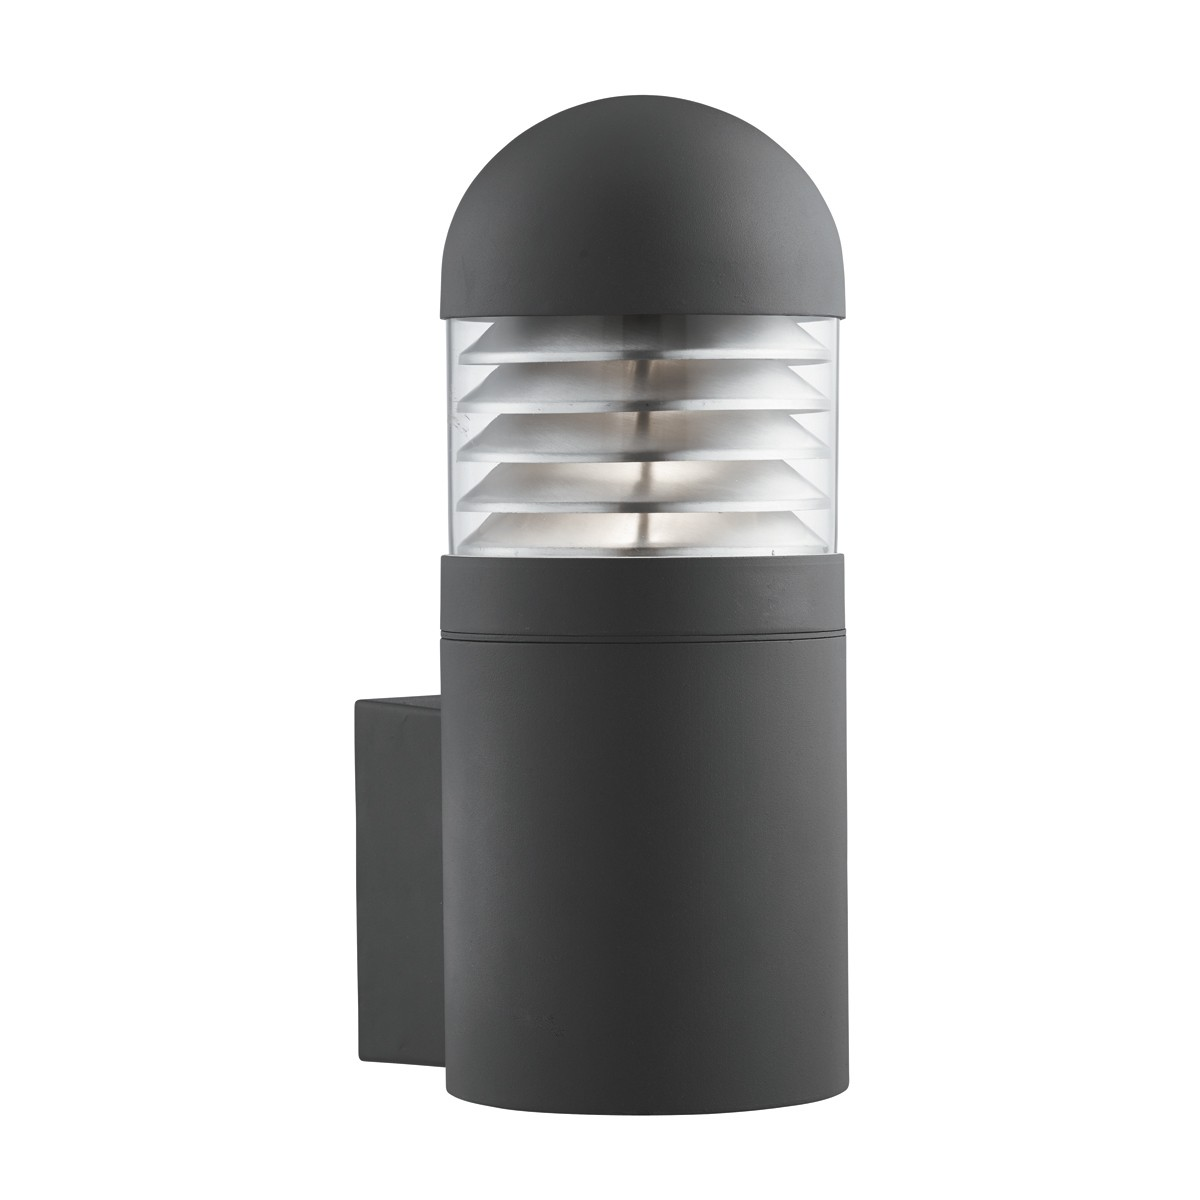 IP44 OUTDOOR WALL LIGHT WITH POLYCARBONATE DIFFUSER 7899BK Loading